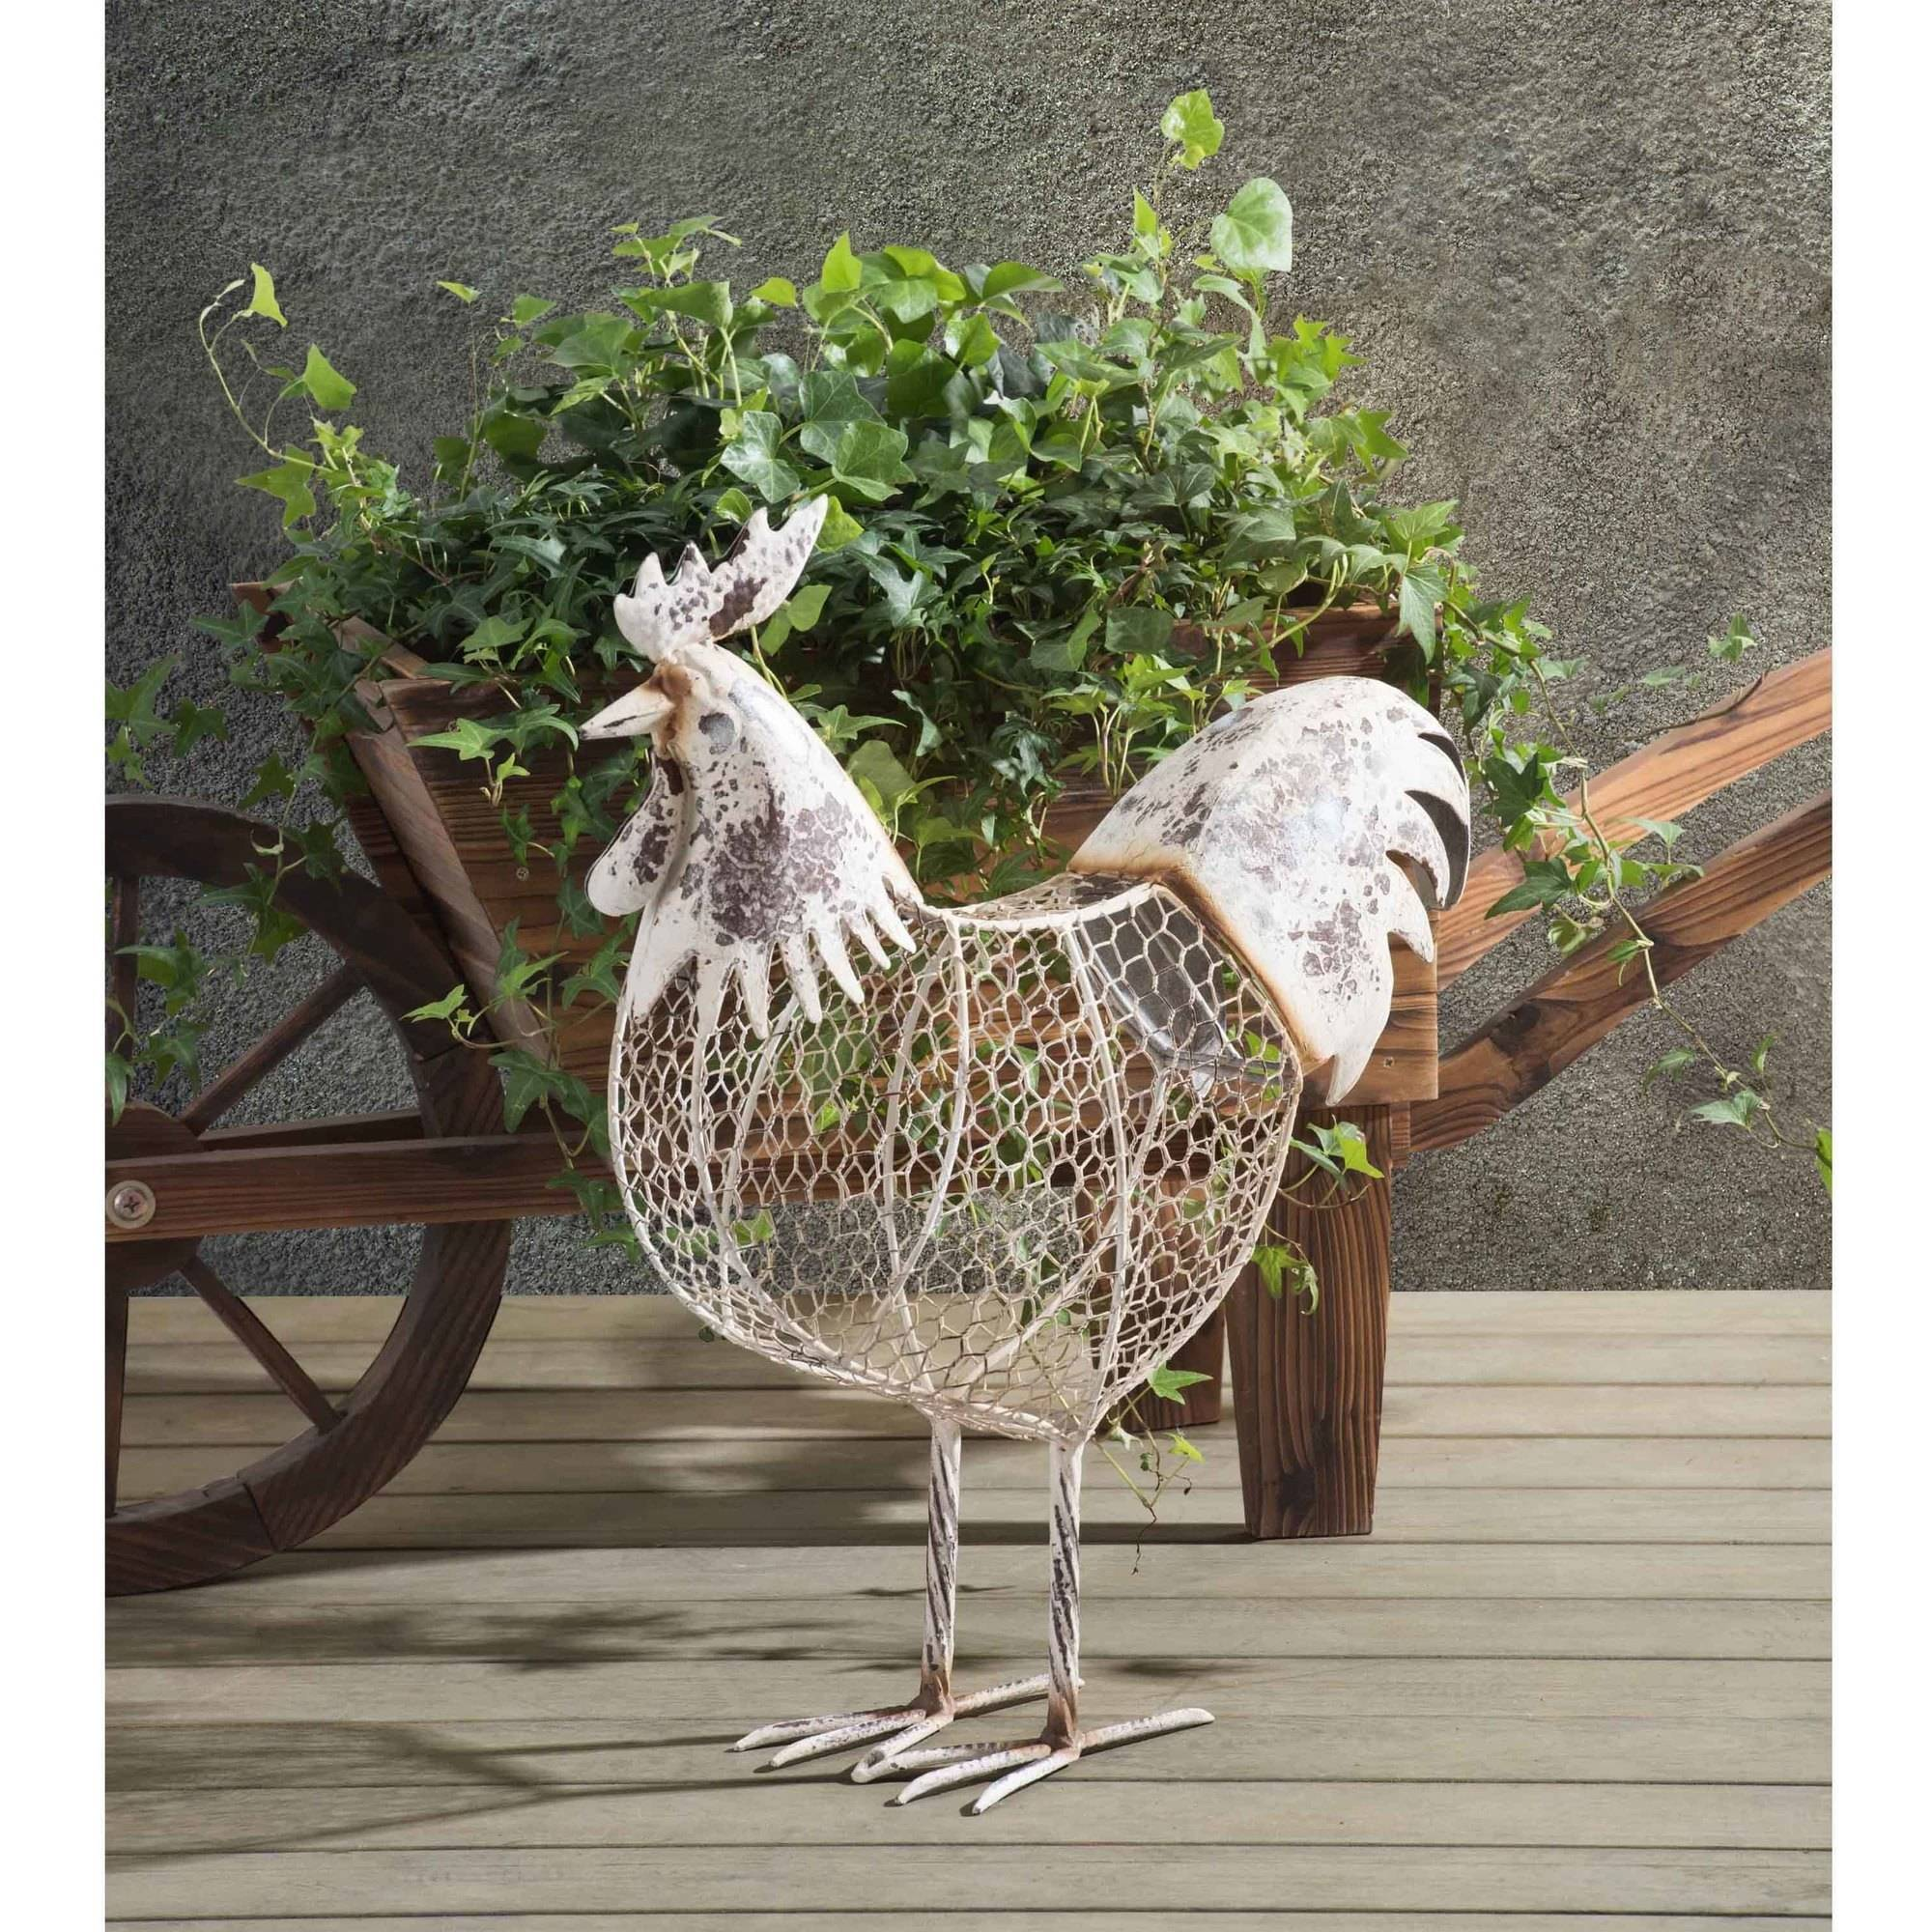 Sunjoy 110301010 Rustic Chicken Wire Rooster Painted Metal Garden Sculpture, Antique White, 21""